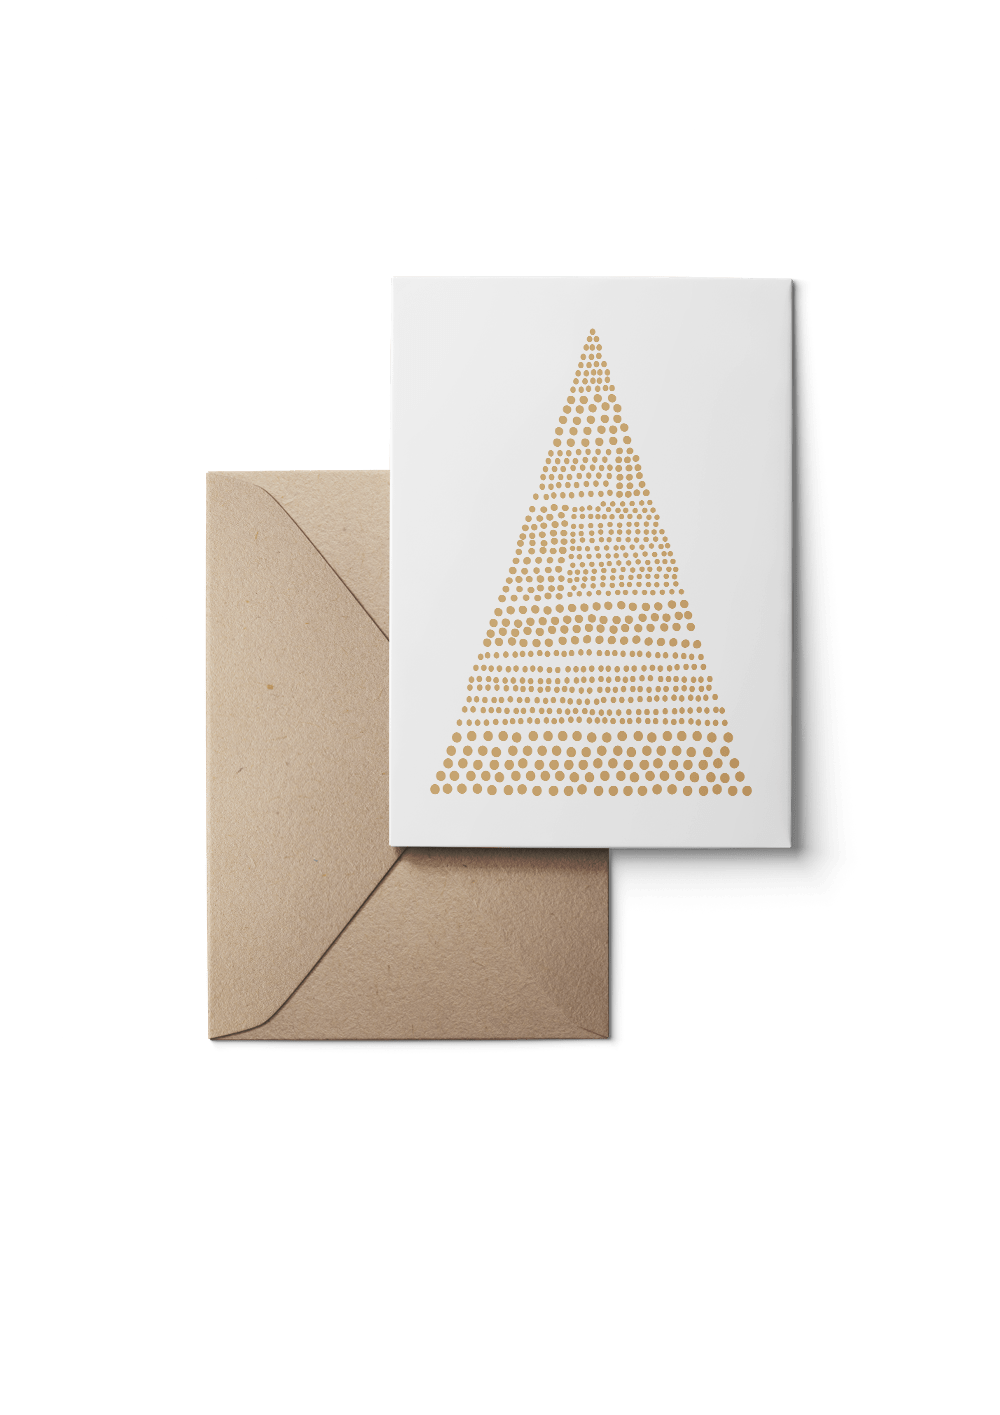 Bells, Beige, Eco, 6 Karten Set by Karten Design Fabrik. Supplier of designer Greeting Cards, Gift Wrap, Christmas Cards & Invitations to leading design stores including Connox, Modulor, Magazin & Manufactum.